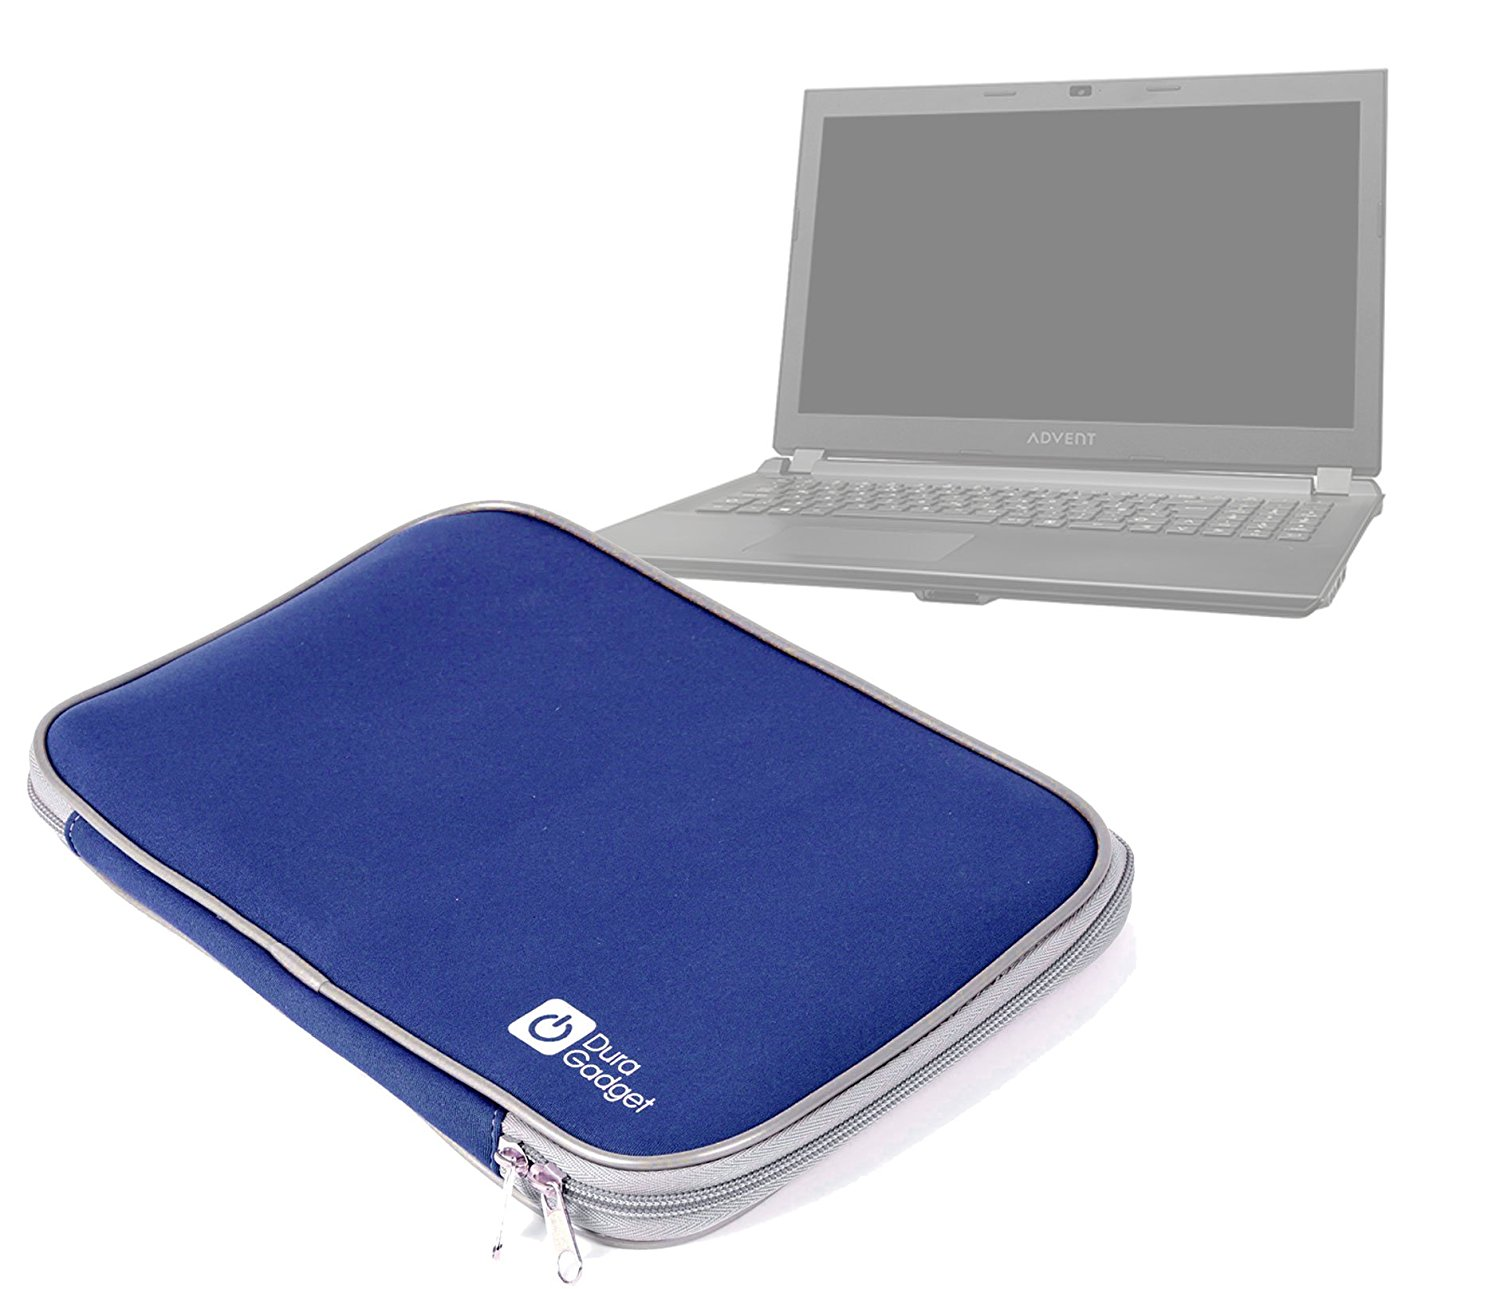 DURAGADGET Shock Proof & Water Resistant Deep Blue 16 Inch Neoprene Laptop Carry Case For Advent Torino X500, Advent Torino X200, Advent Torino X100, HP Pavilion 15-n083sa & Asus Zenbook U500VZ